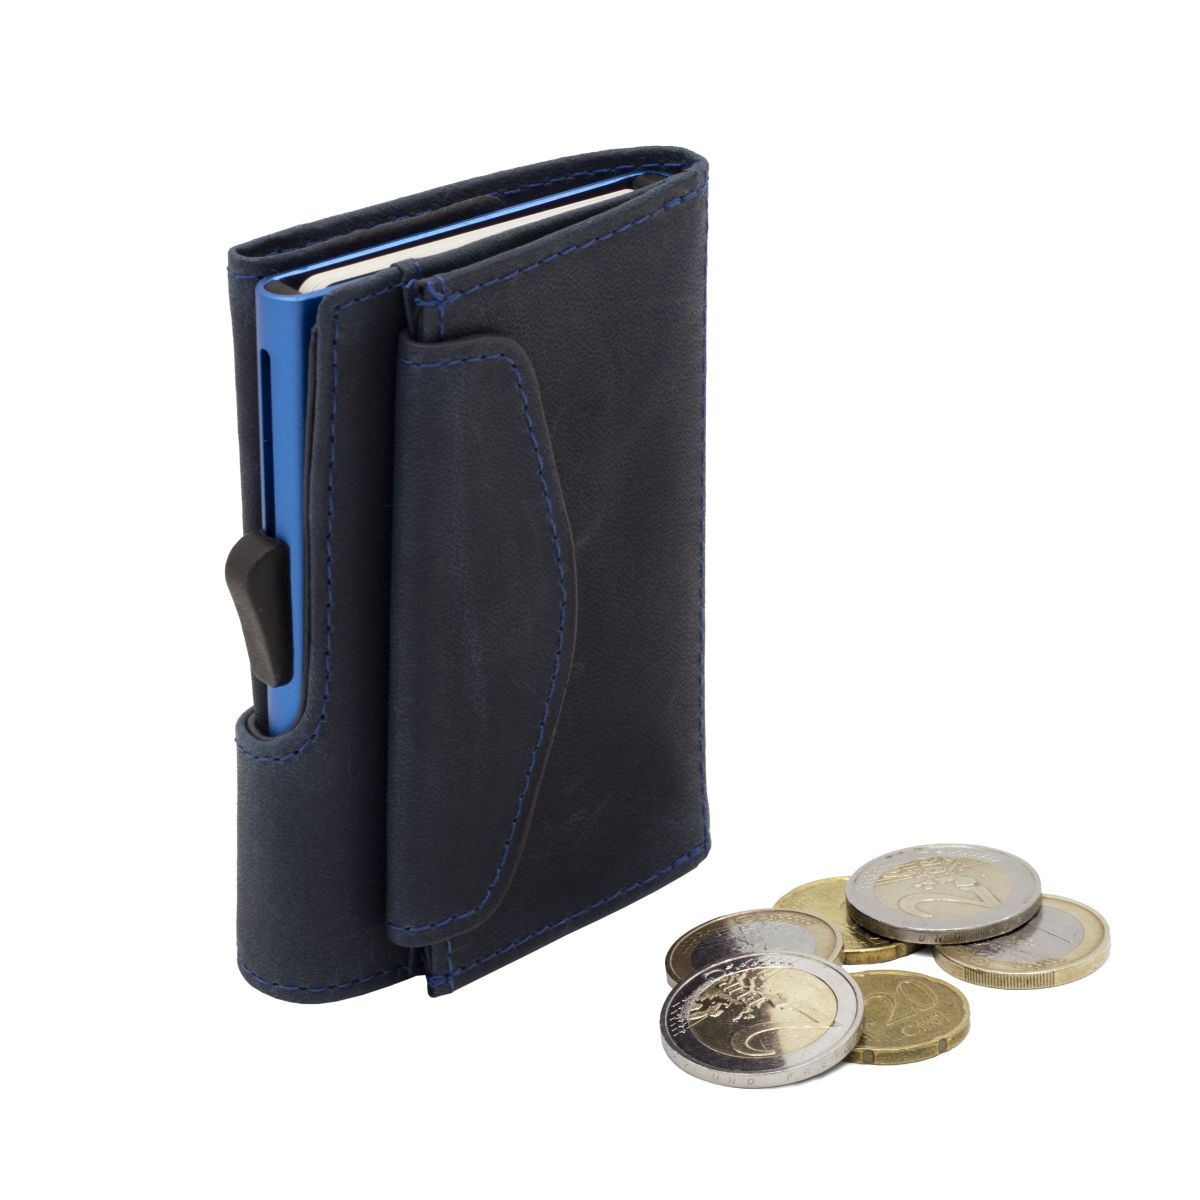 C-Secure Aluminum Card Holder with Genuine Leather and Coin Pouch - Naval Blue